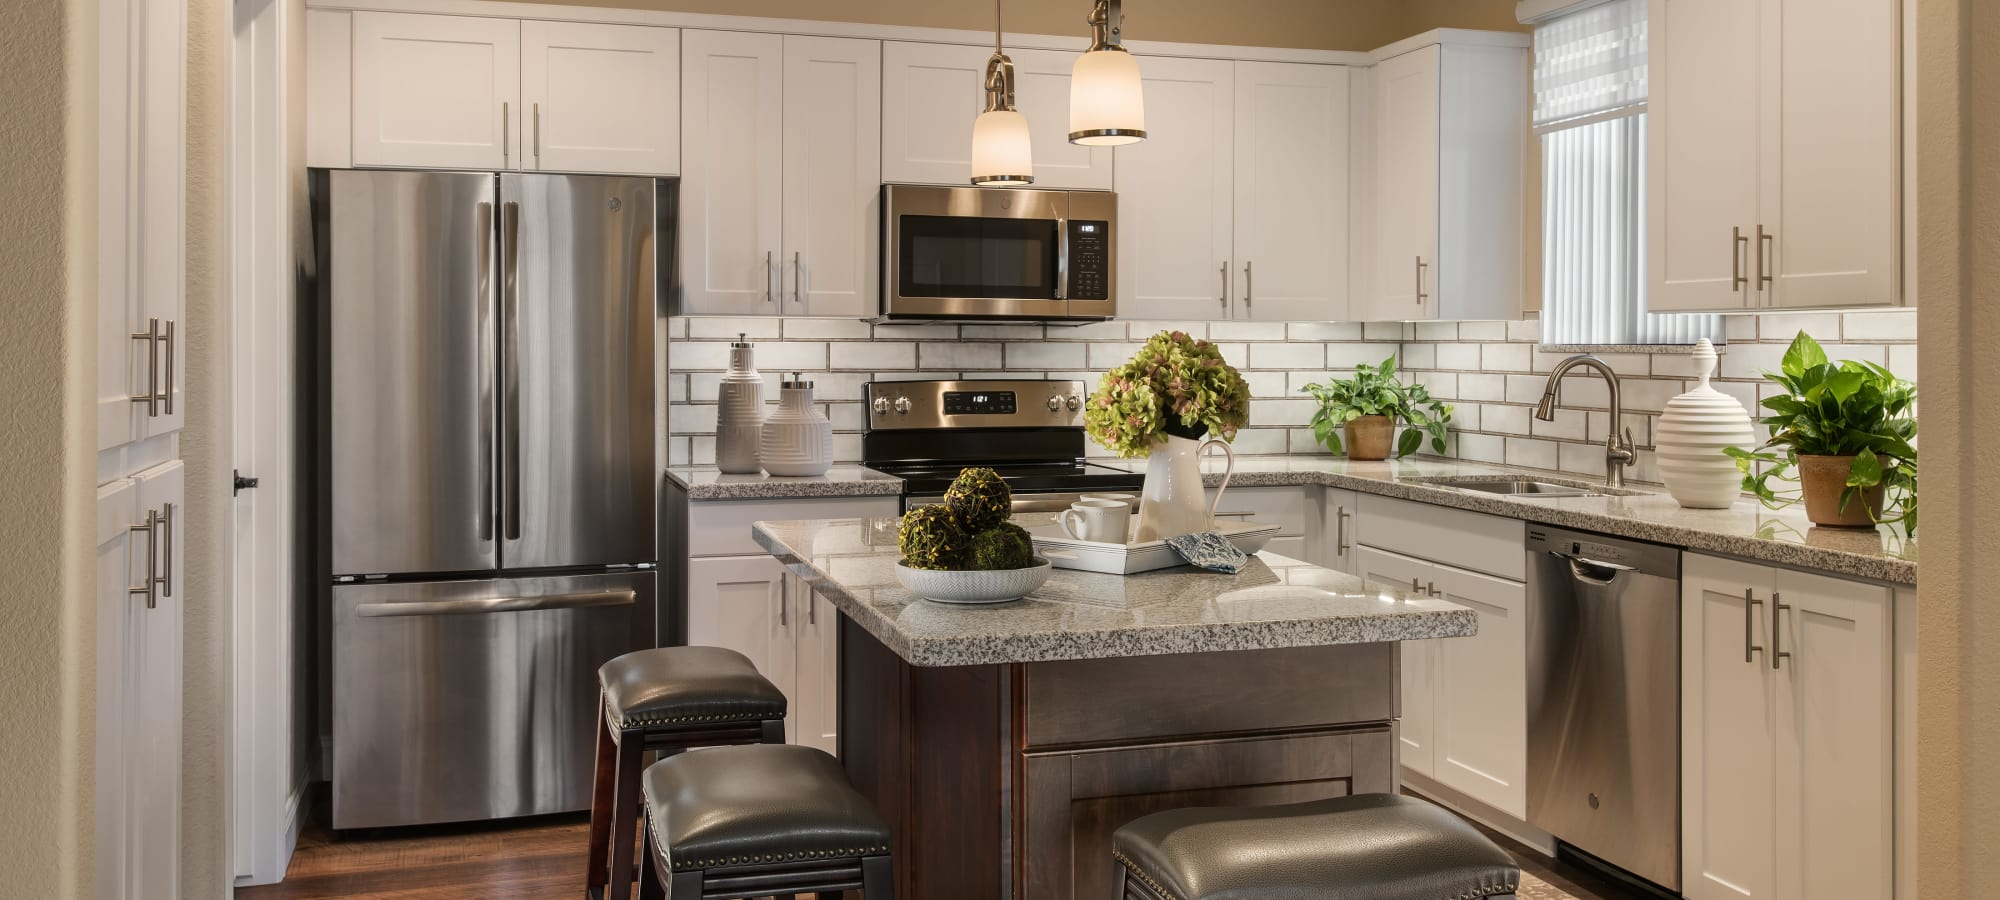 Modern kitchen with granite countertops and stainless-steel appliances in model home at San Piedra in Mesa, Arizona